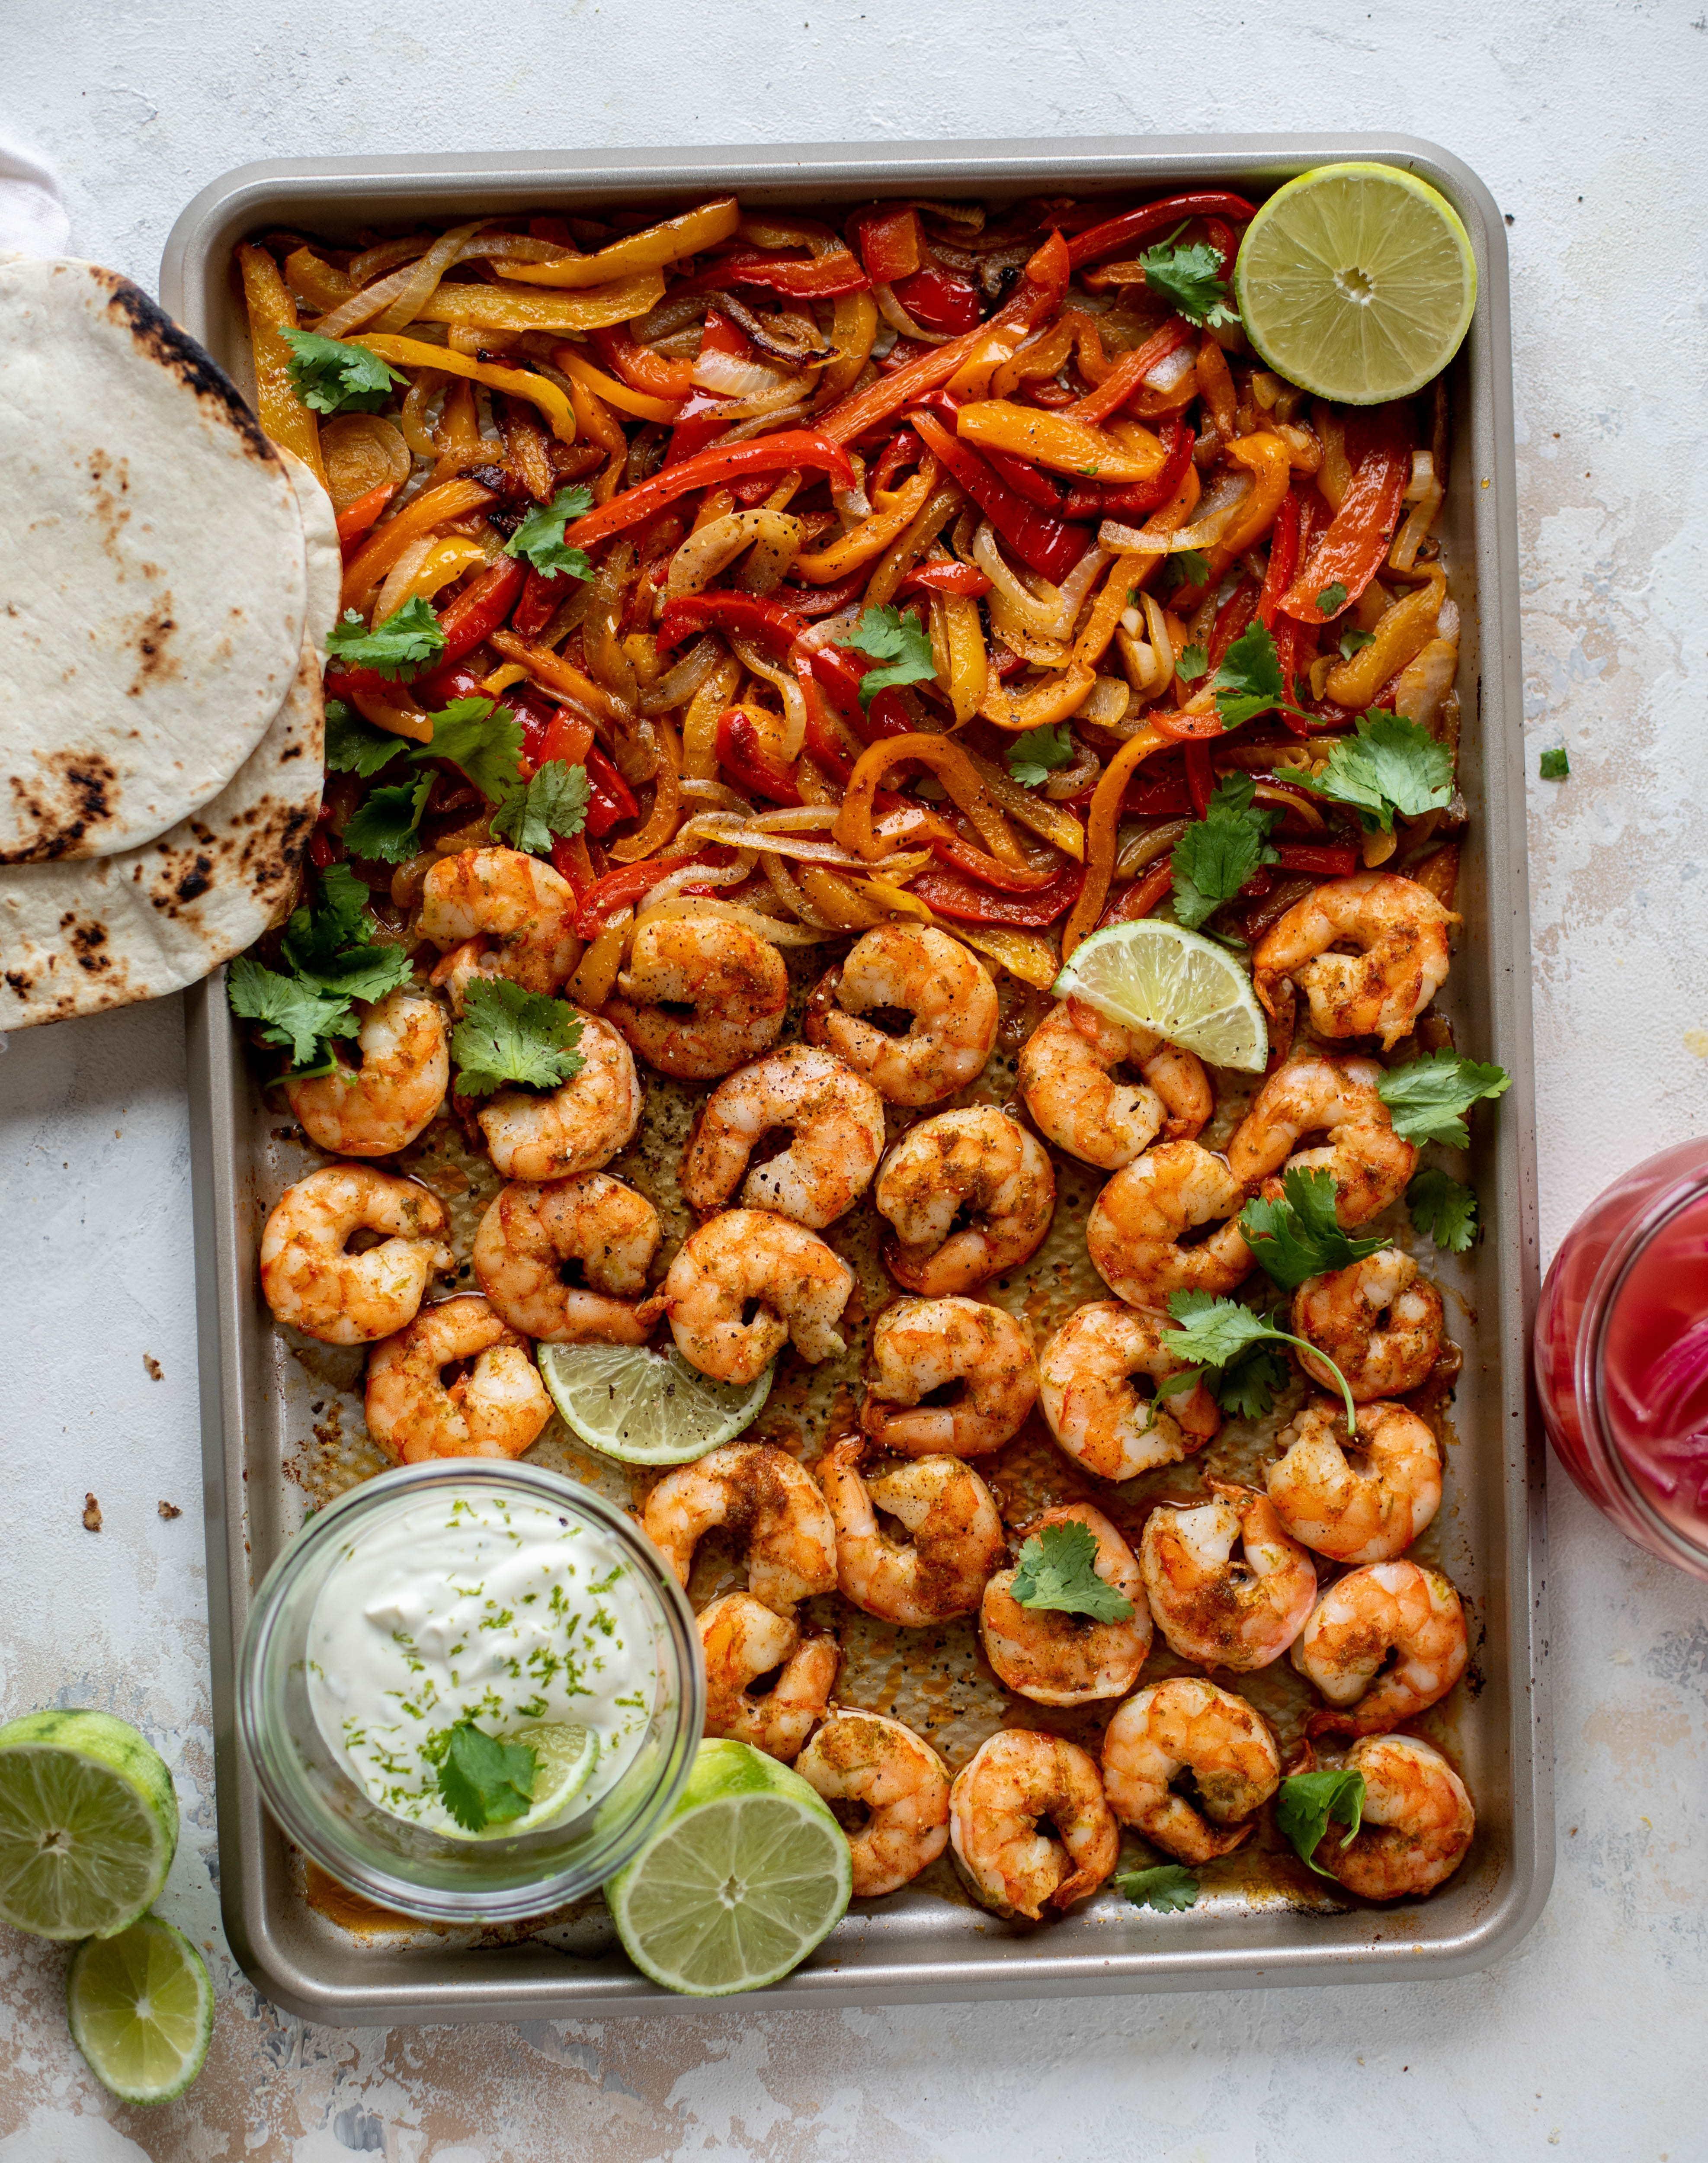 These lime sheet pan shrimp fajitas are the best weeknight meal! Make everything on the sheet pan and serve in warm tortillas. Delicious!